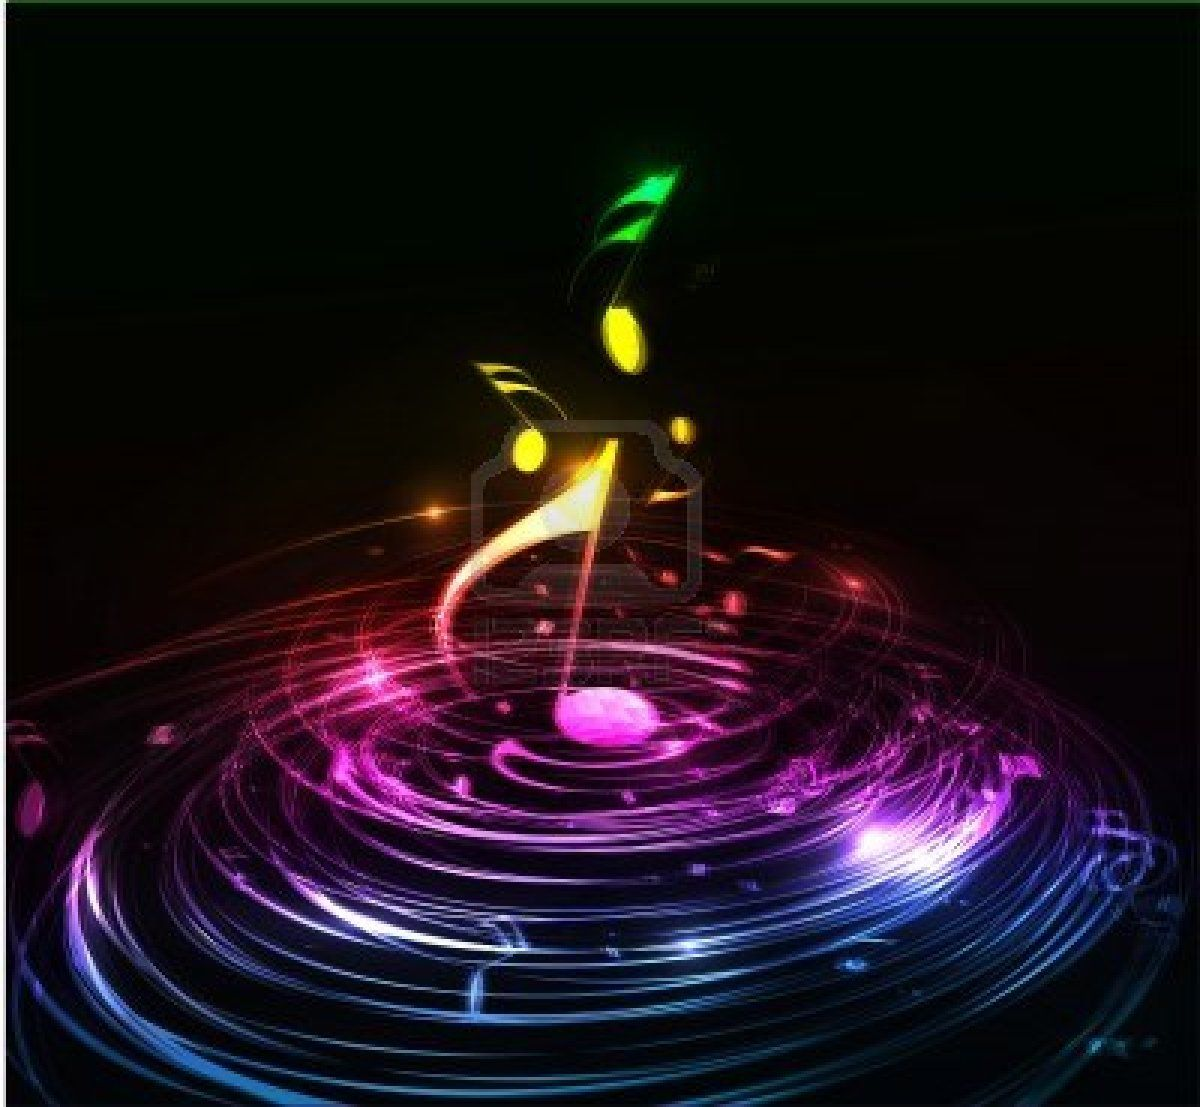 3d Colorful Music Notes Wallpaper Abstract Music Notes Used In Your Project Vector Illustration Music Wallpaper Music Notes Music Backgrounds